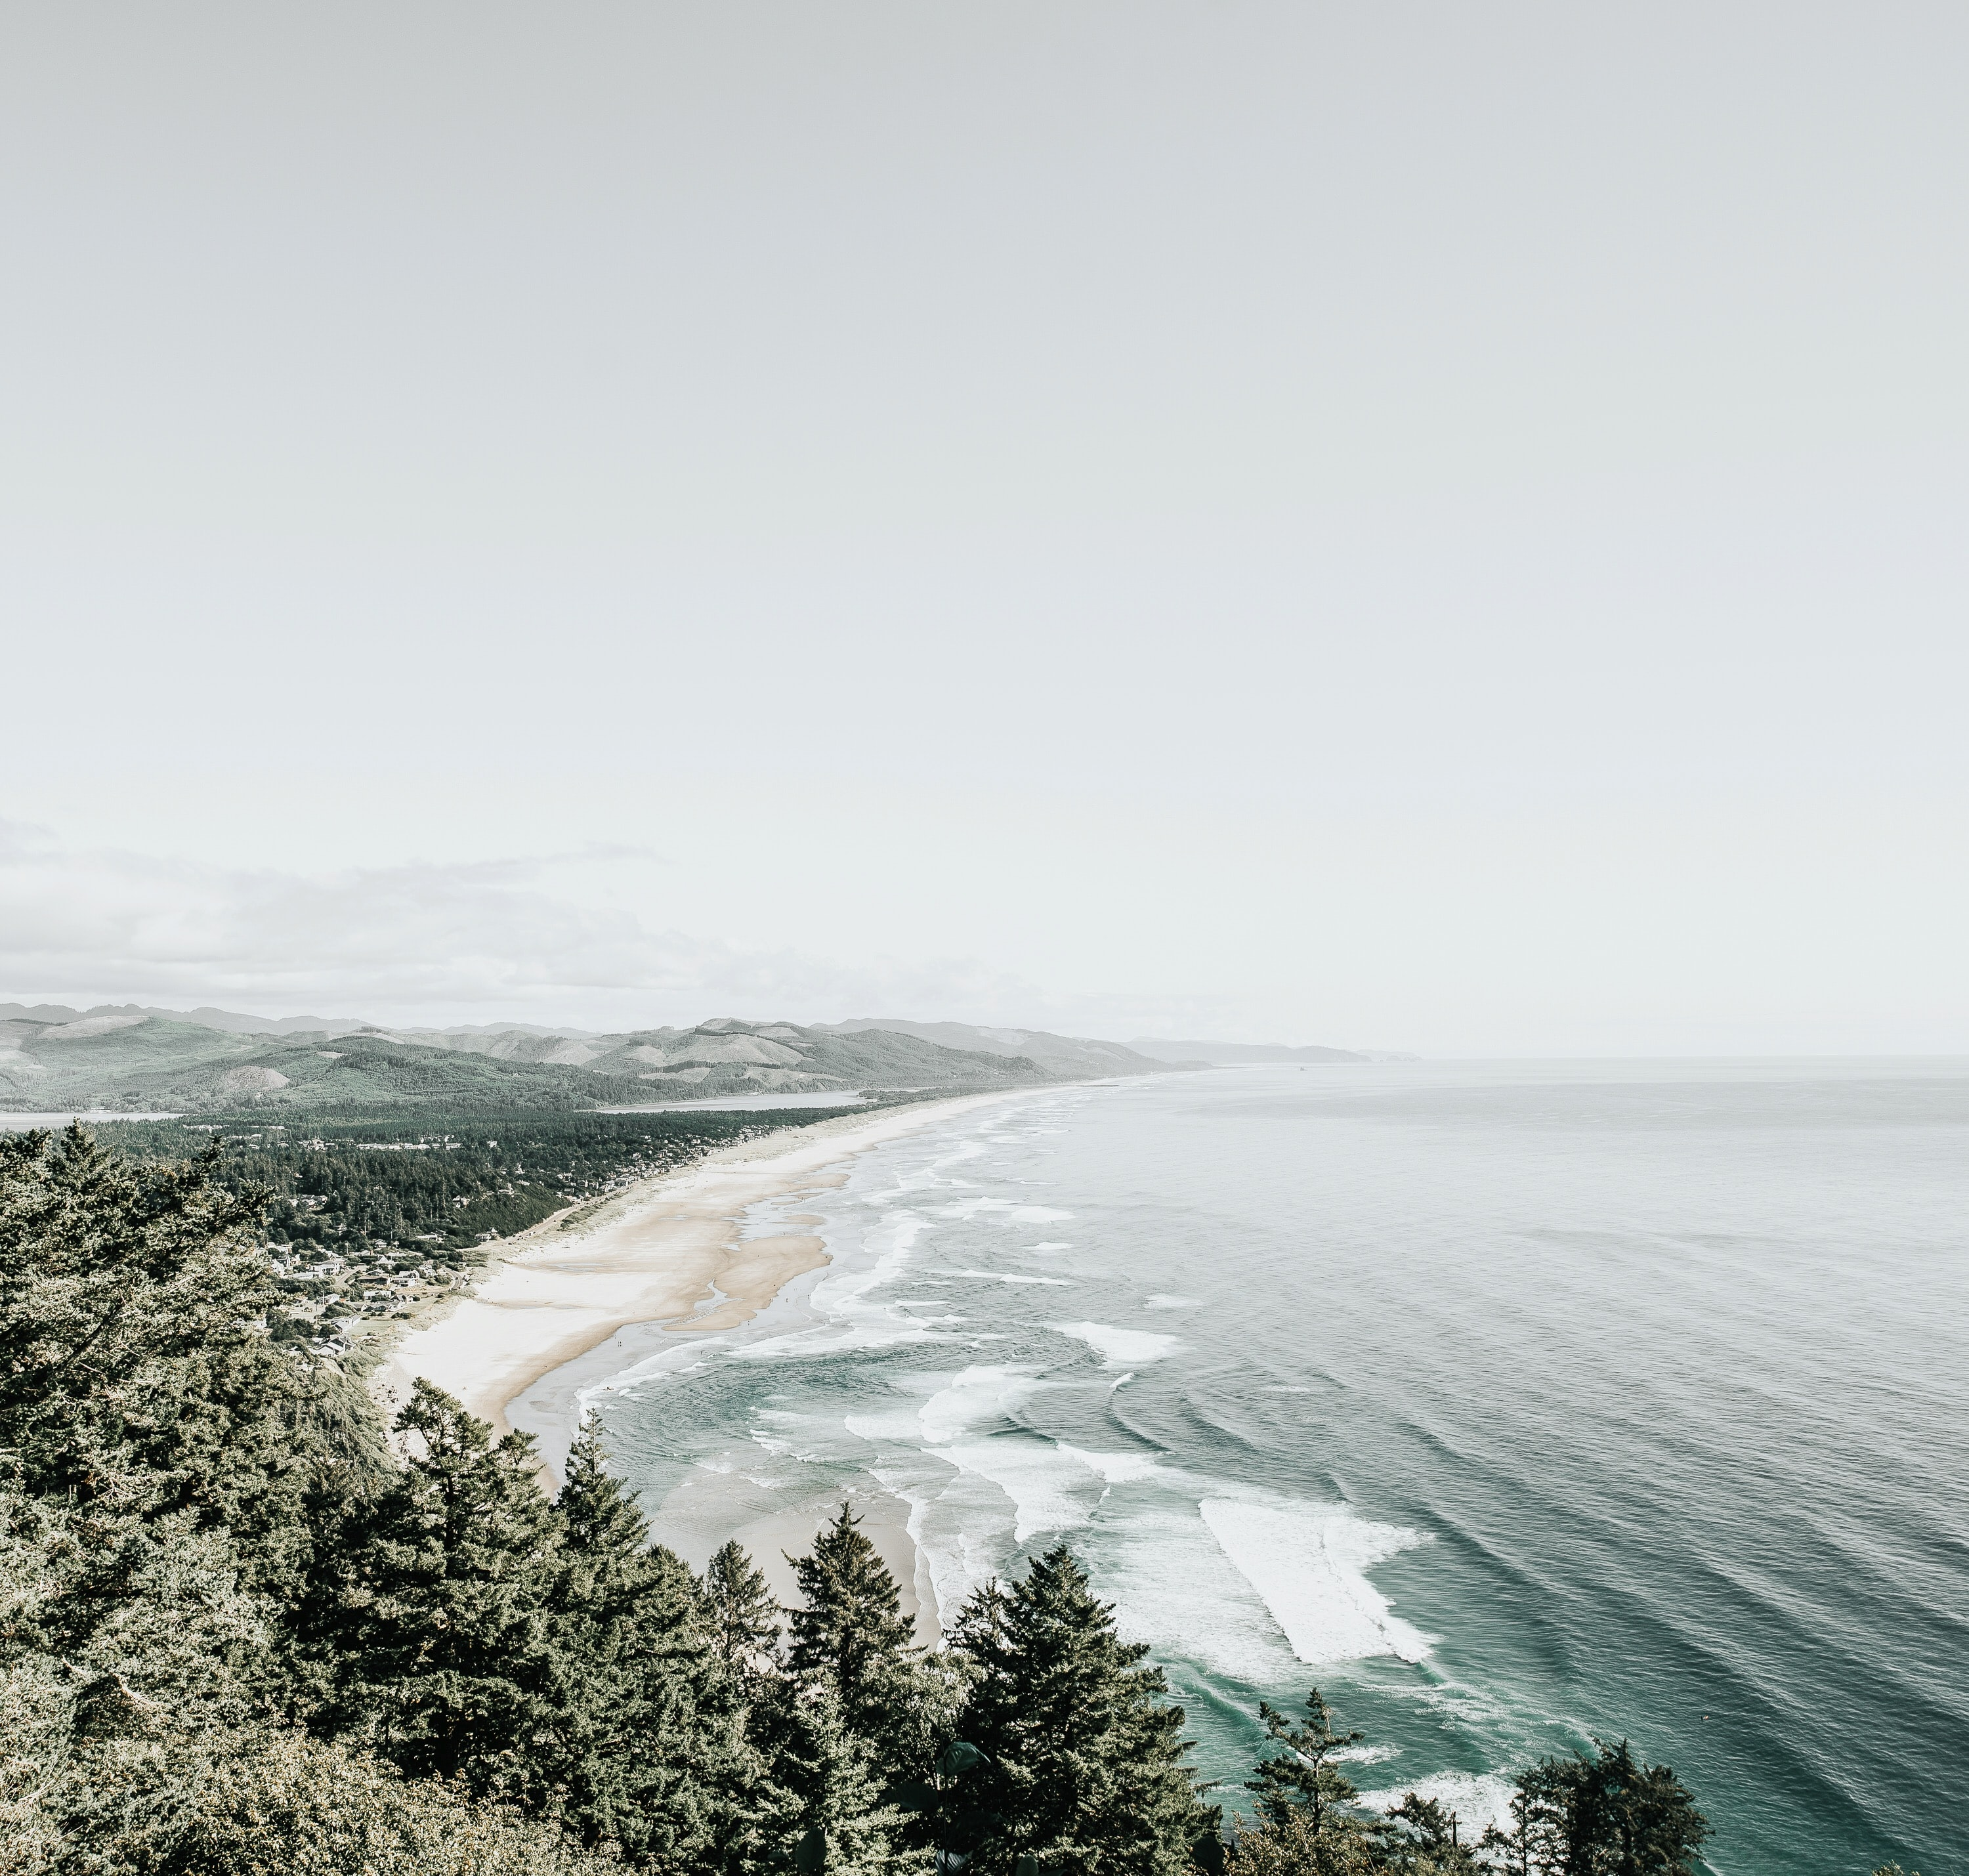 A snow covered, tree-lined shoreline with the sea's waves lapping the beach at Oregon